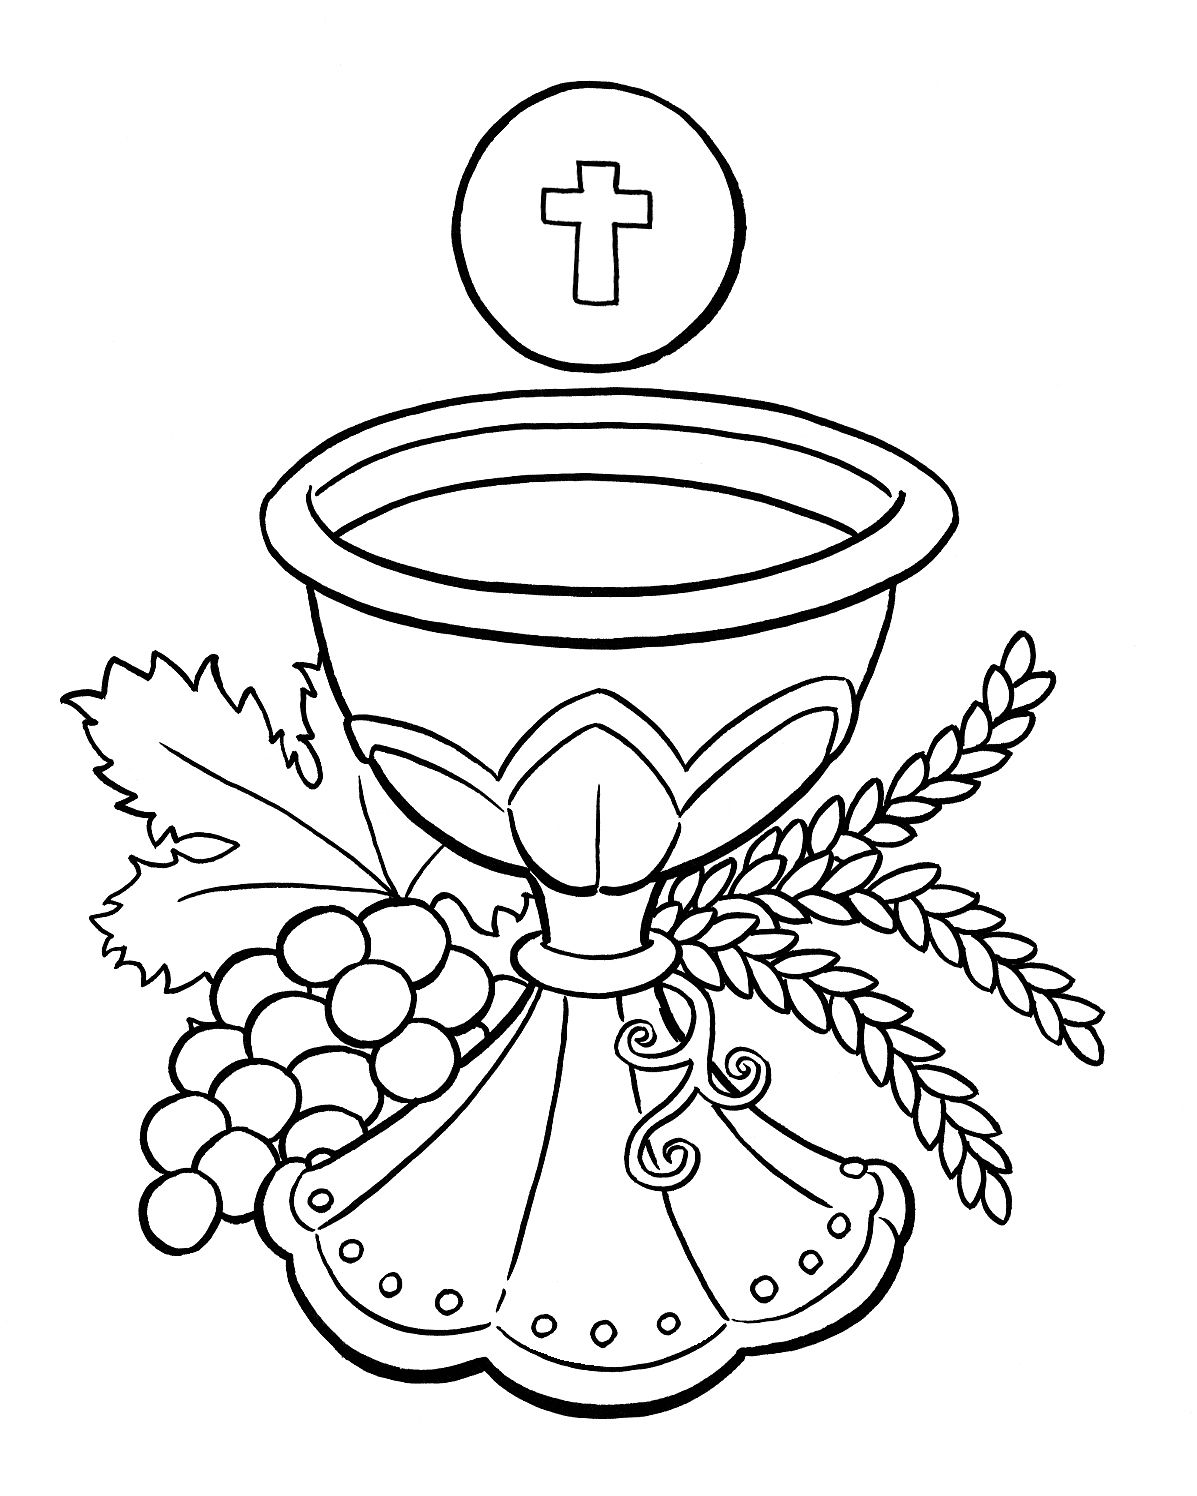 First Communion Chalice Clipart Communion Cup Clip Art With